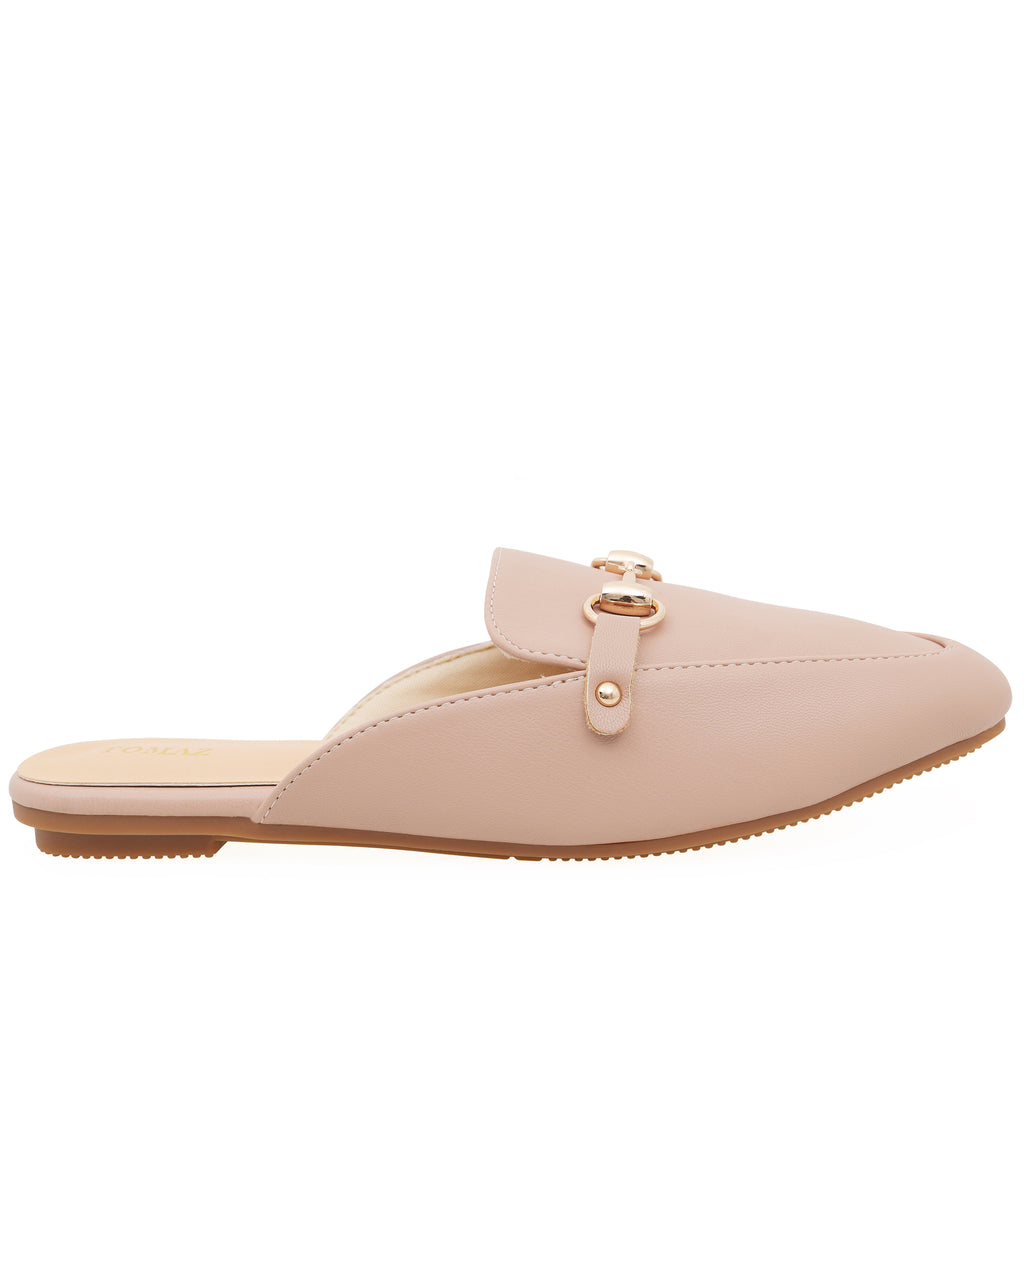 Tomaz XP91 Ladies Mule (Beige)